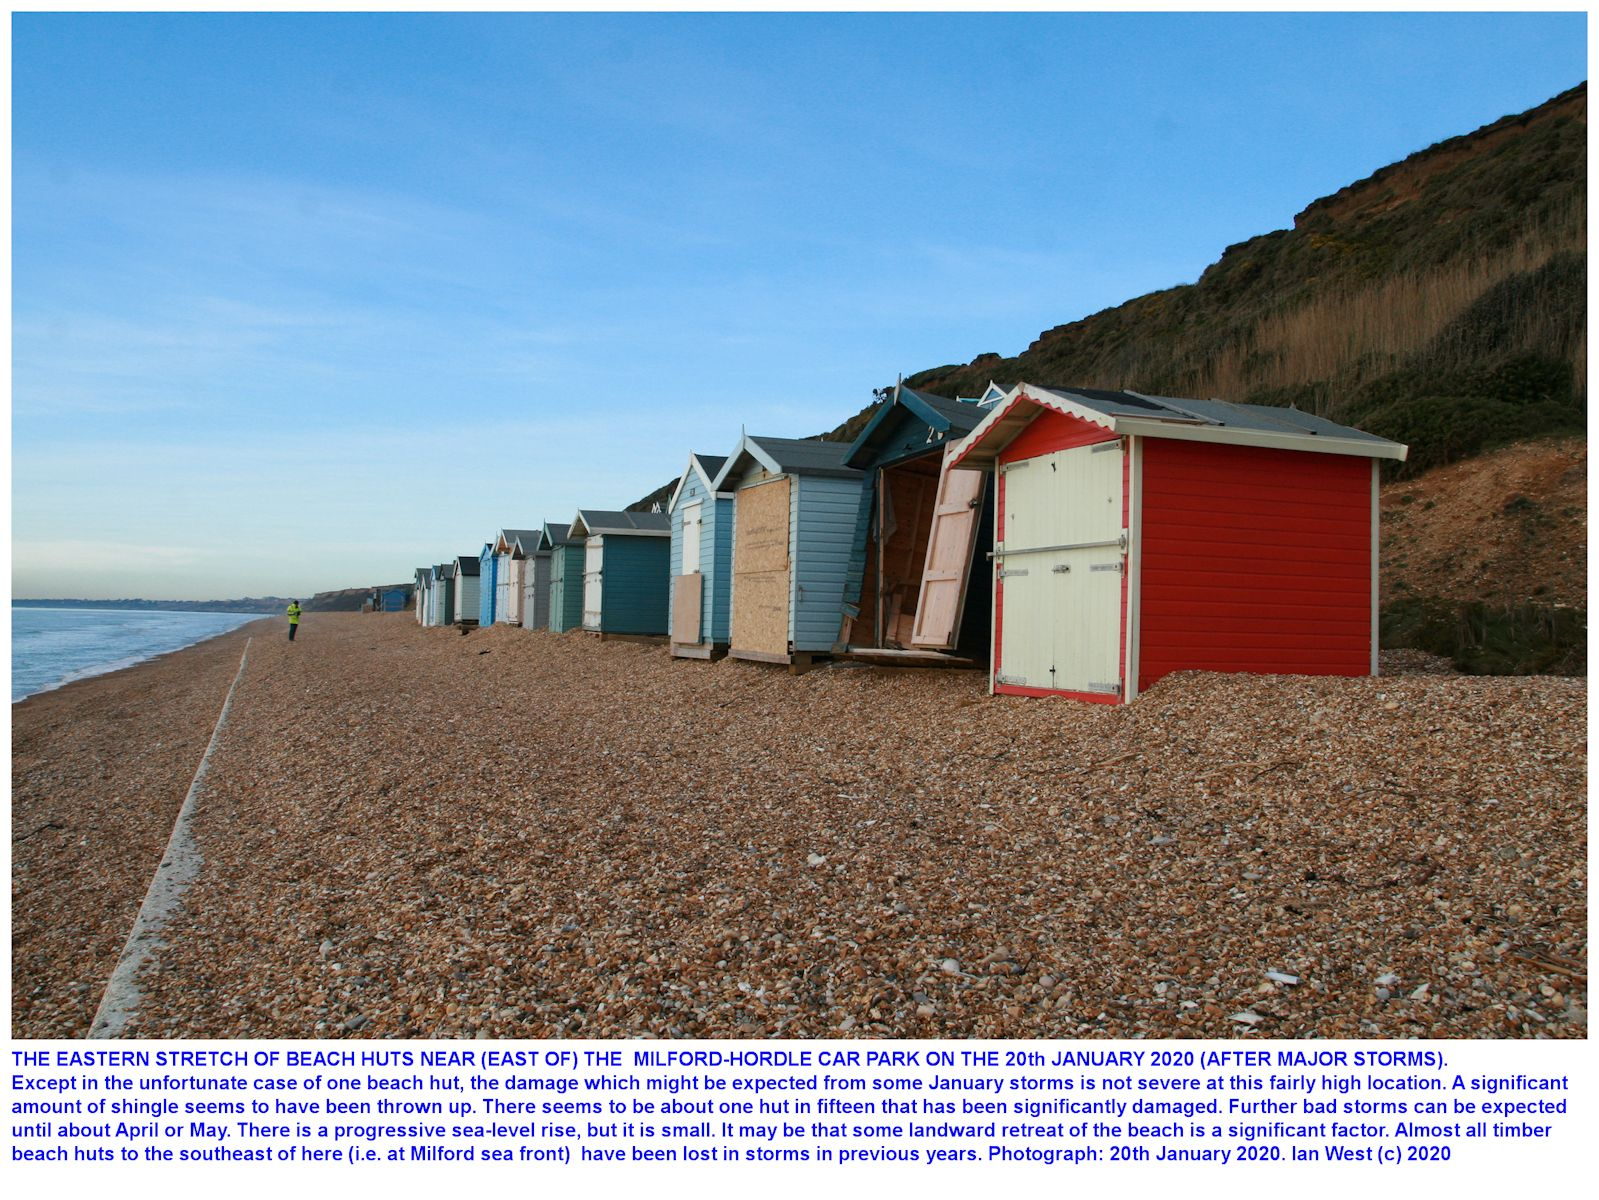 Some beach huts, with one of them damaged by wave action, east of Milford-Hordle car park, 20th January 2020, Ian West